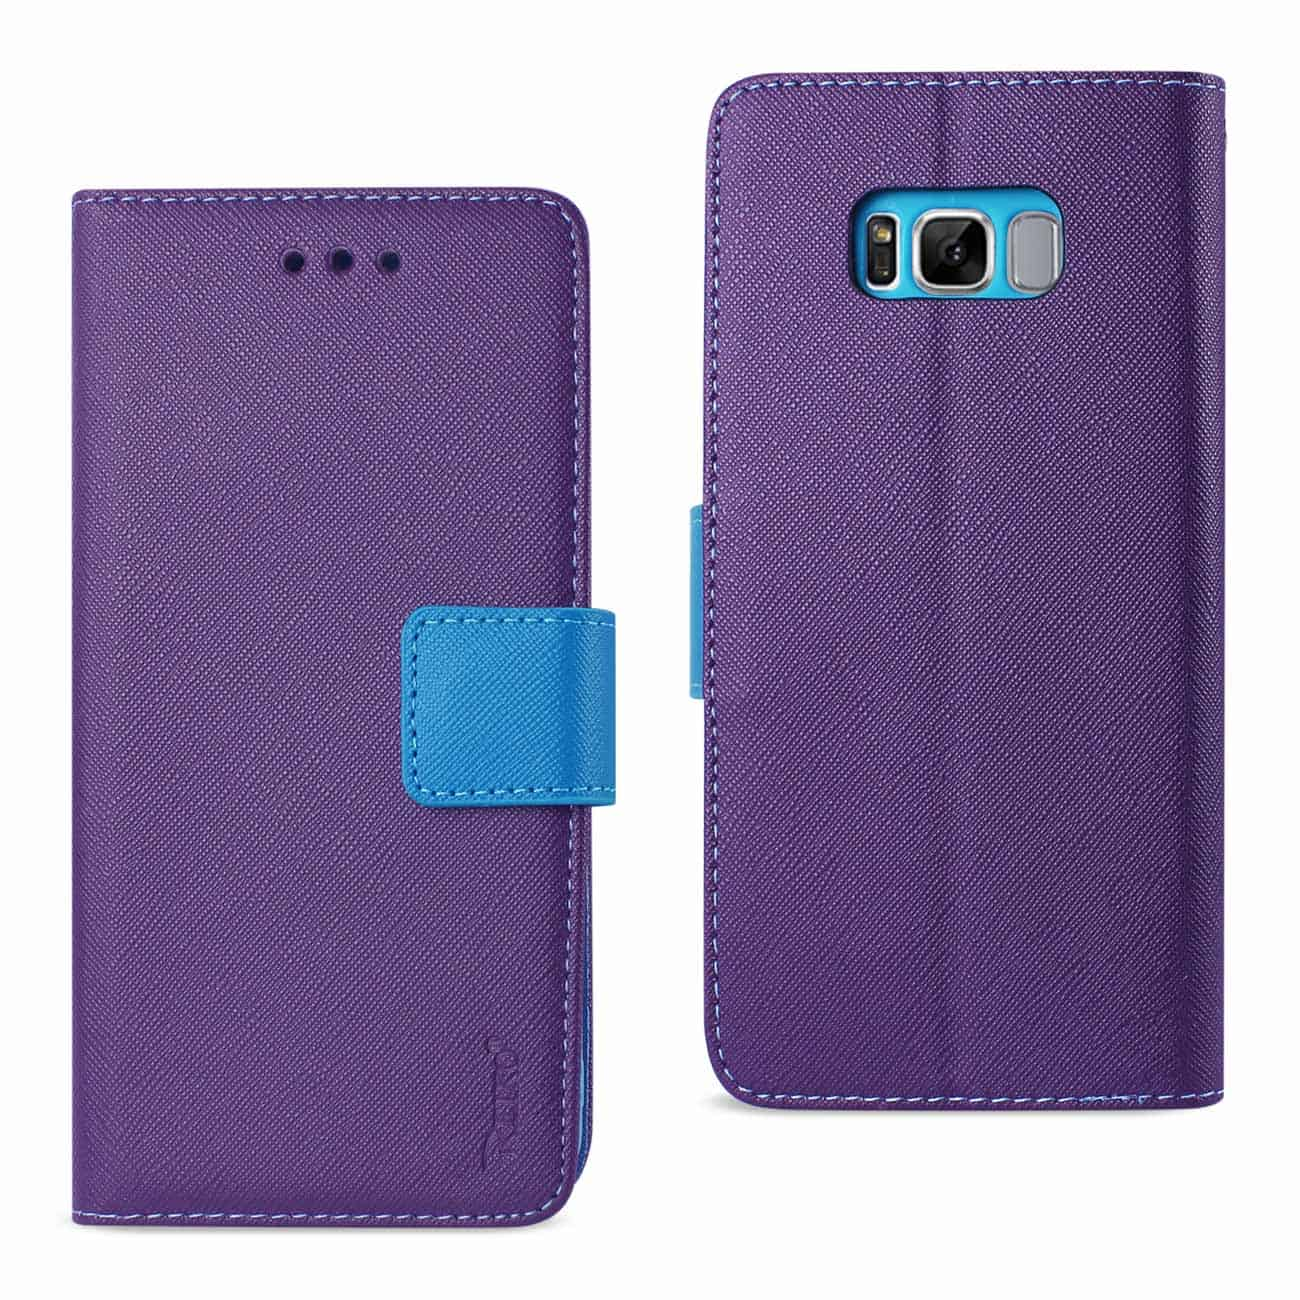 SAMSUNG GALAXY S8 3-IN-1 WALLET CASE IN PURPLE